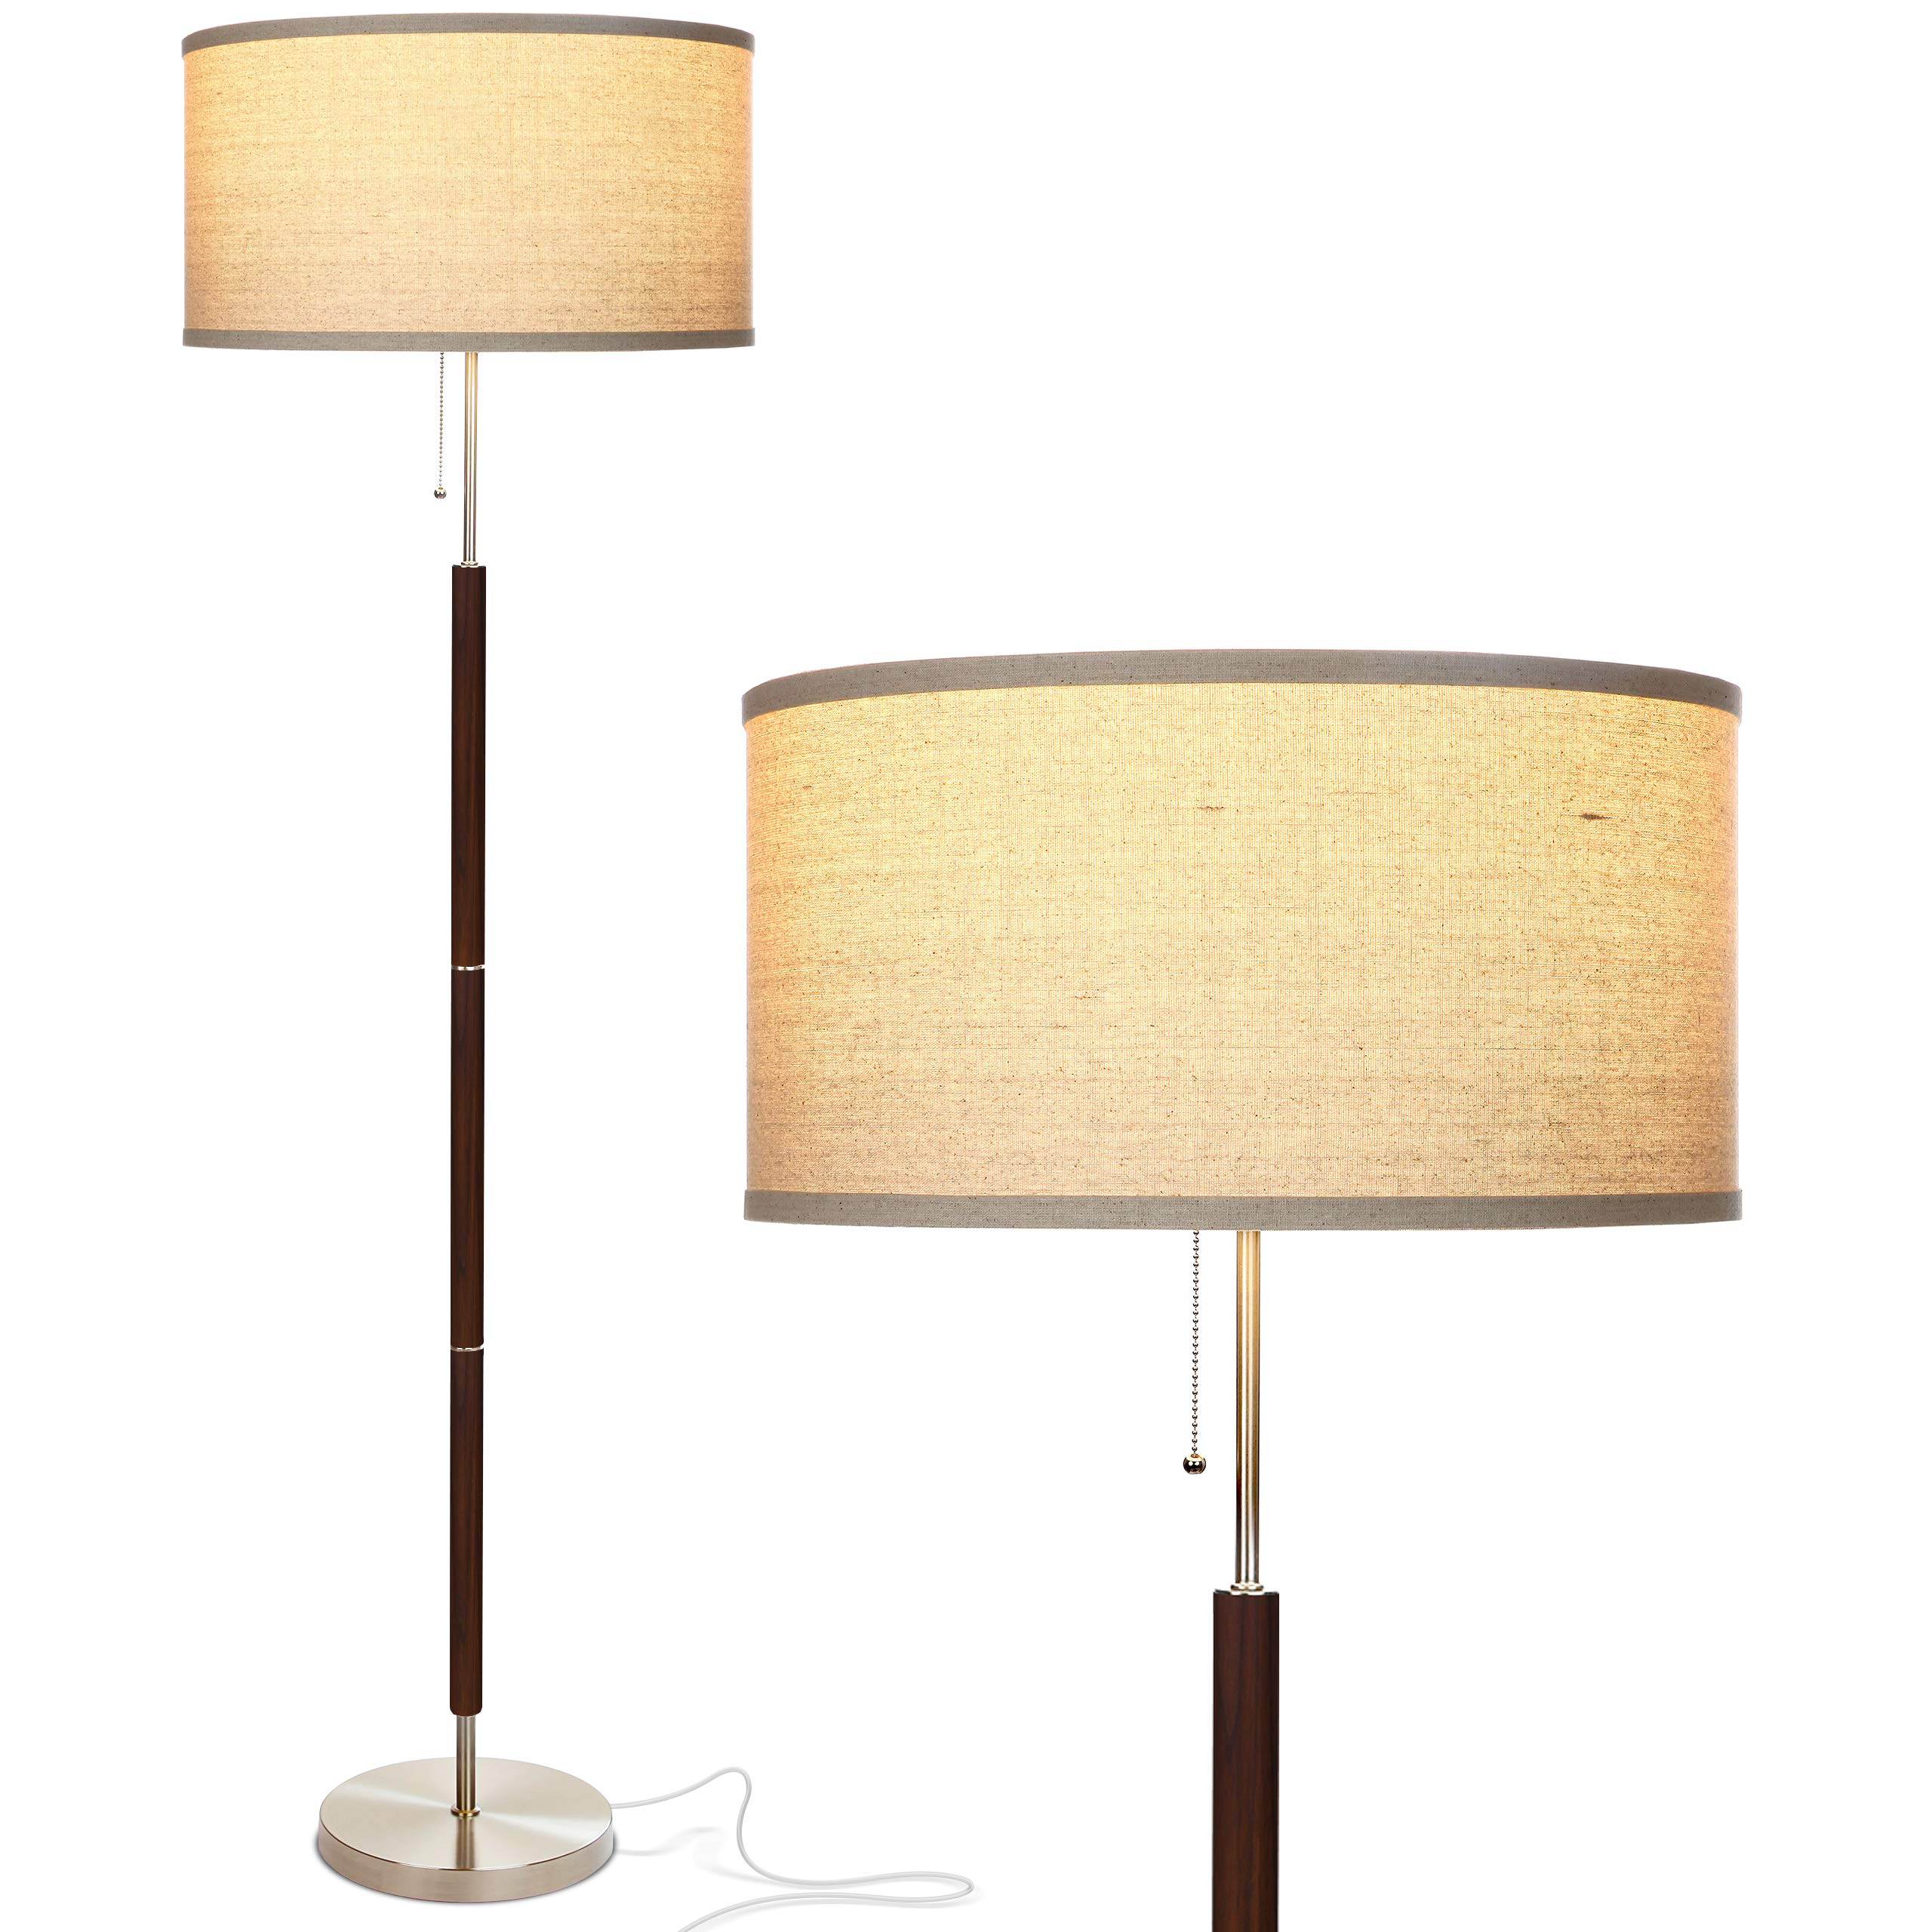 Brightech Carter LED Mid Century Modern Floor Lamp - Contemporary Living Room Standing Light - Tall Pole, Drum Shade Lamp with Walnut Wood Finish by Brightech